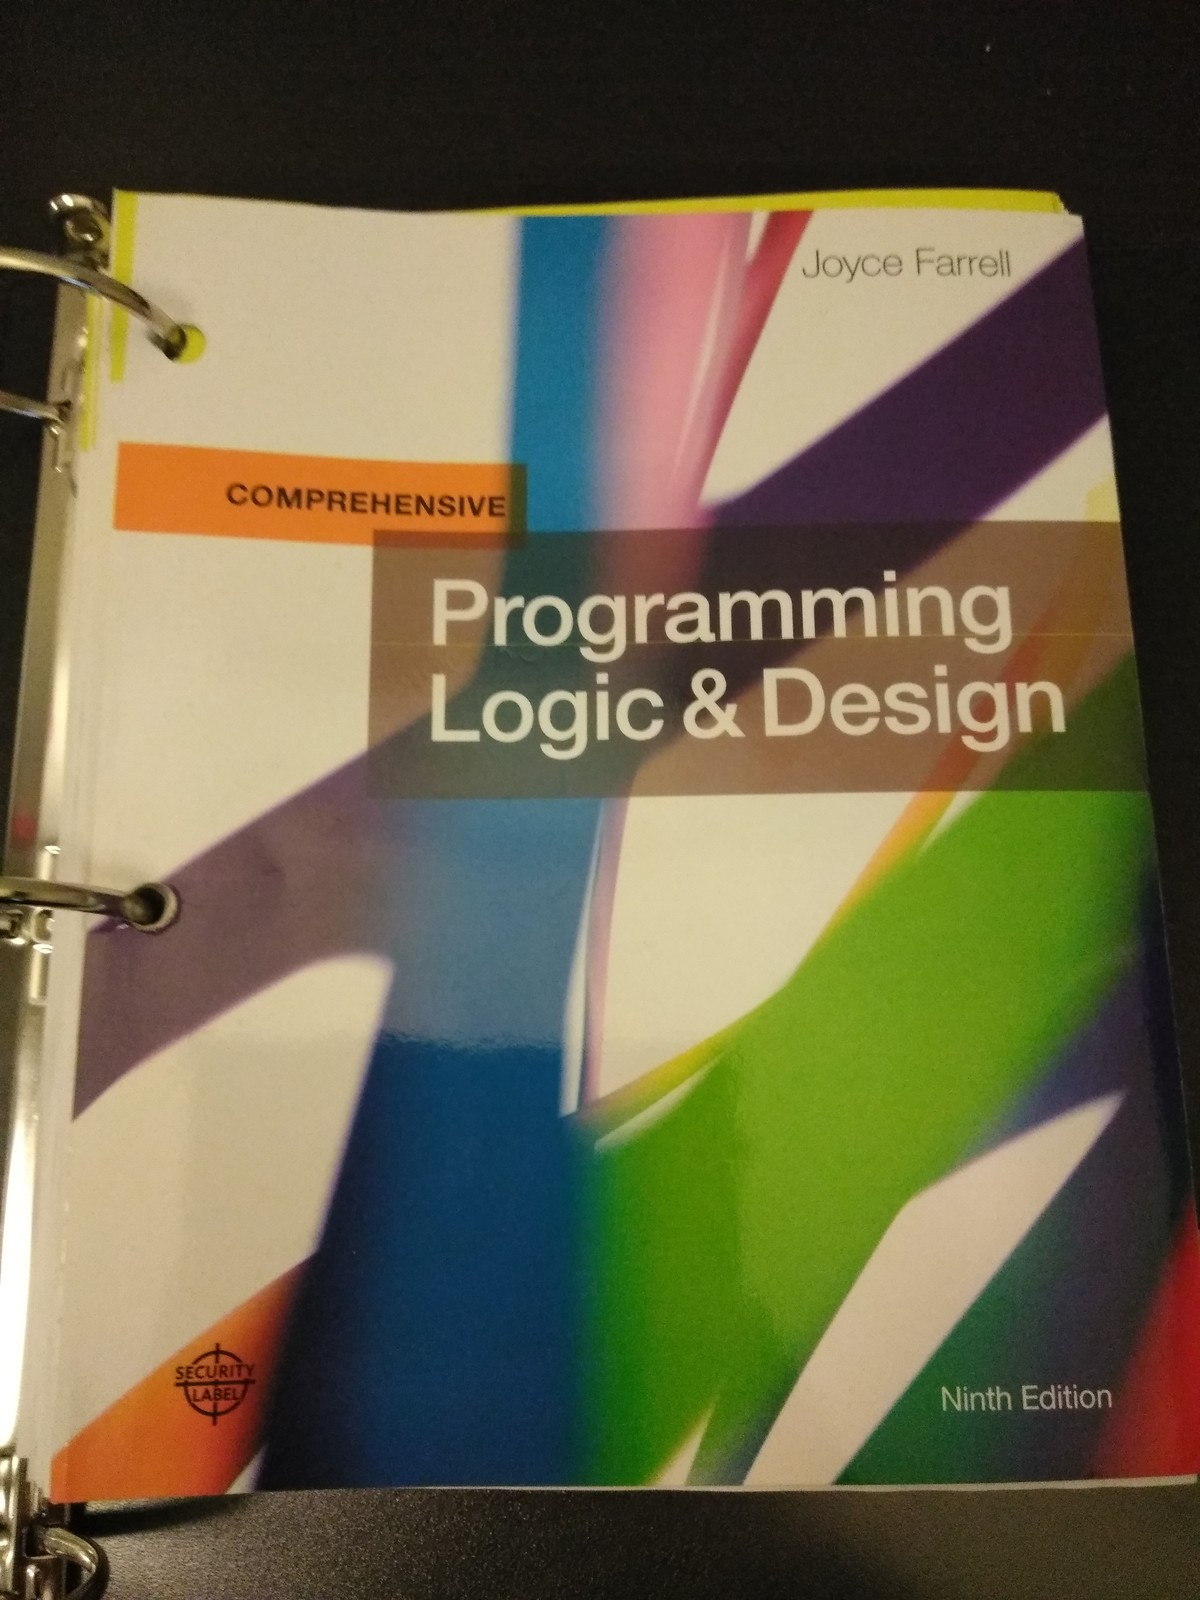 Programming Logic and Design Comprehensive Loose-leaf 9th Edition Joyce Farrell